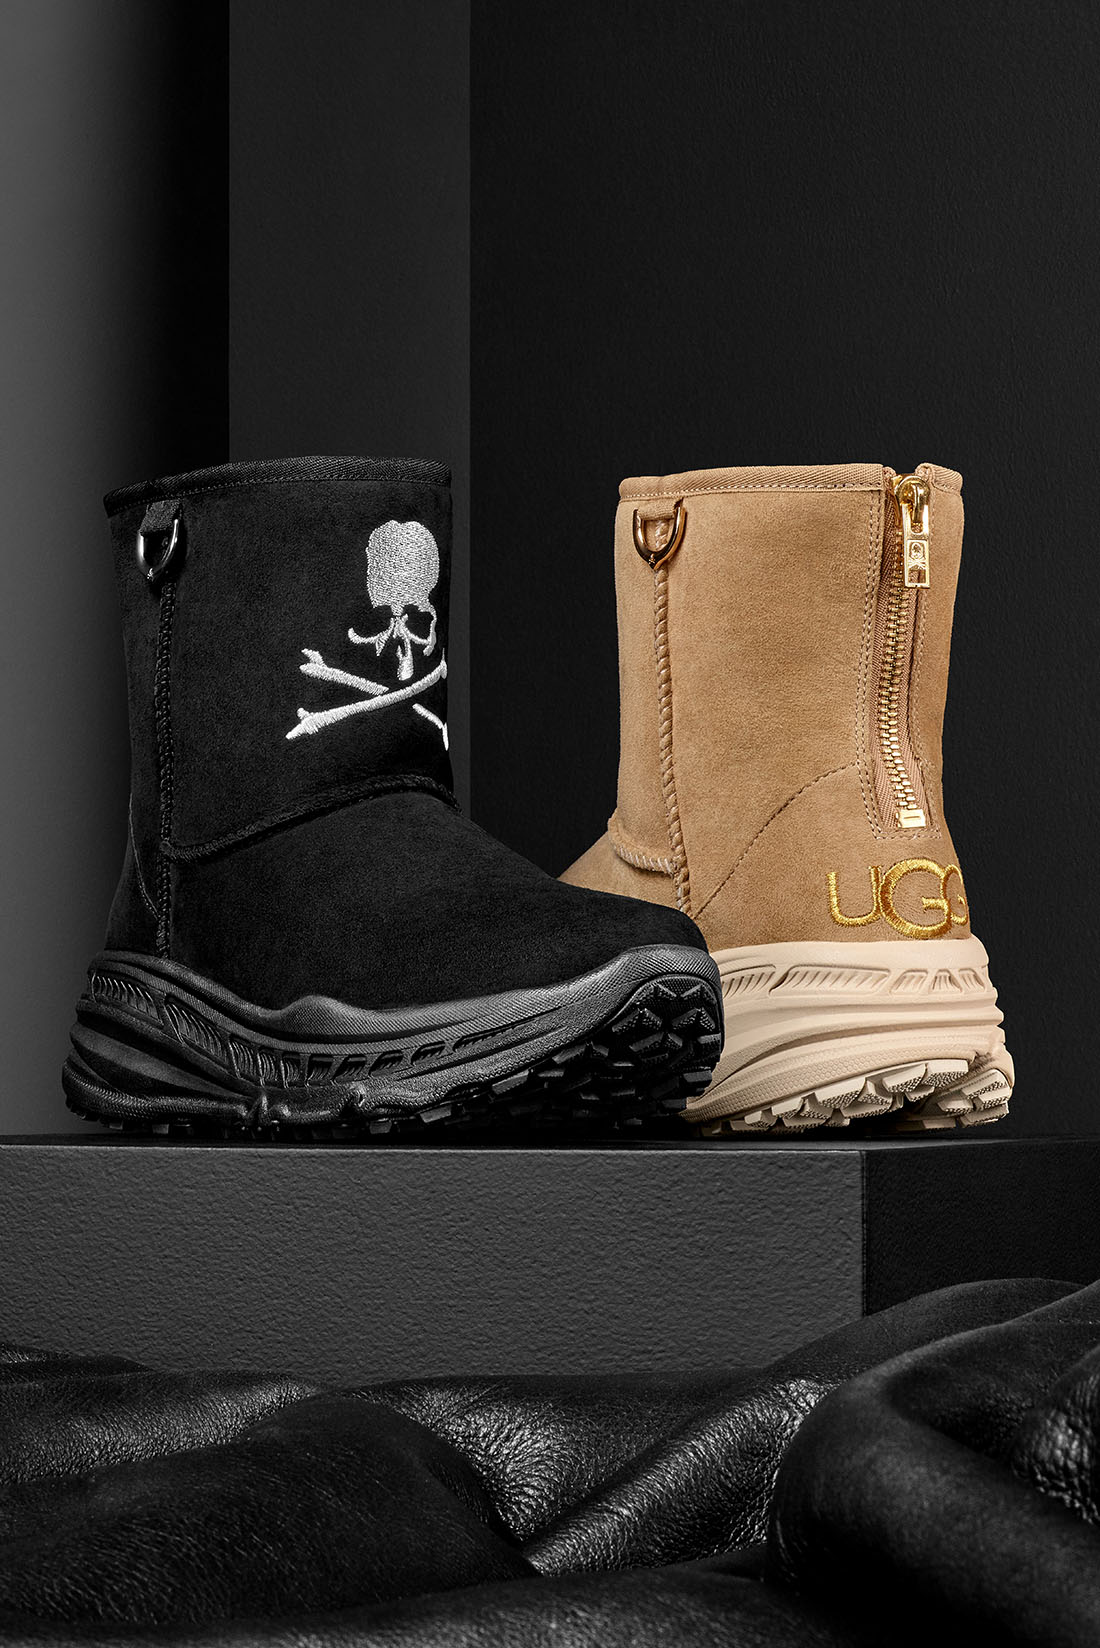 UGG x Mastermind 2nd Collaboration